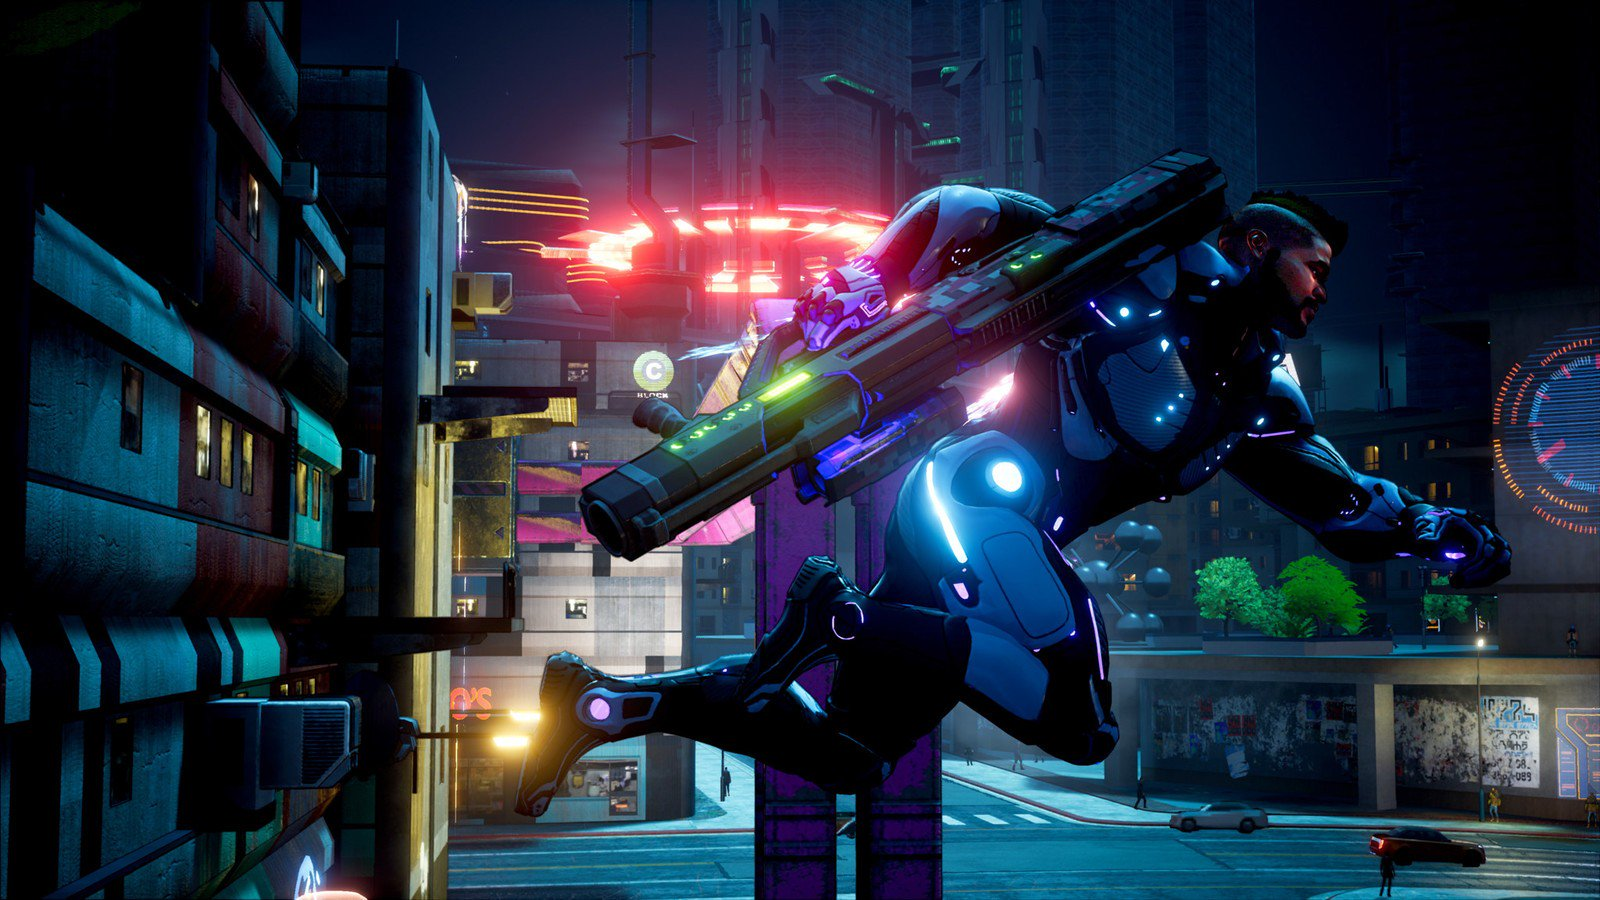 crackdown 3 game pictures wallpaper 67125